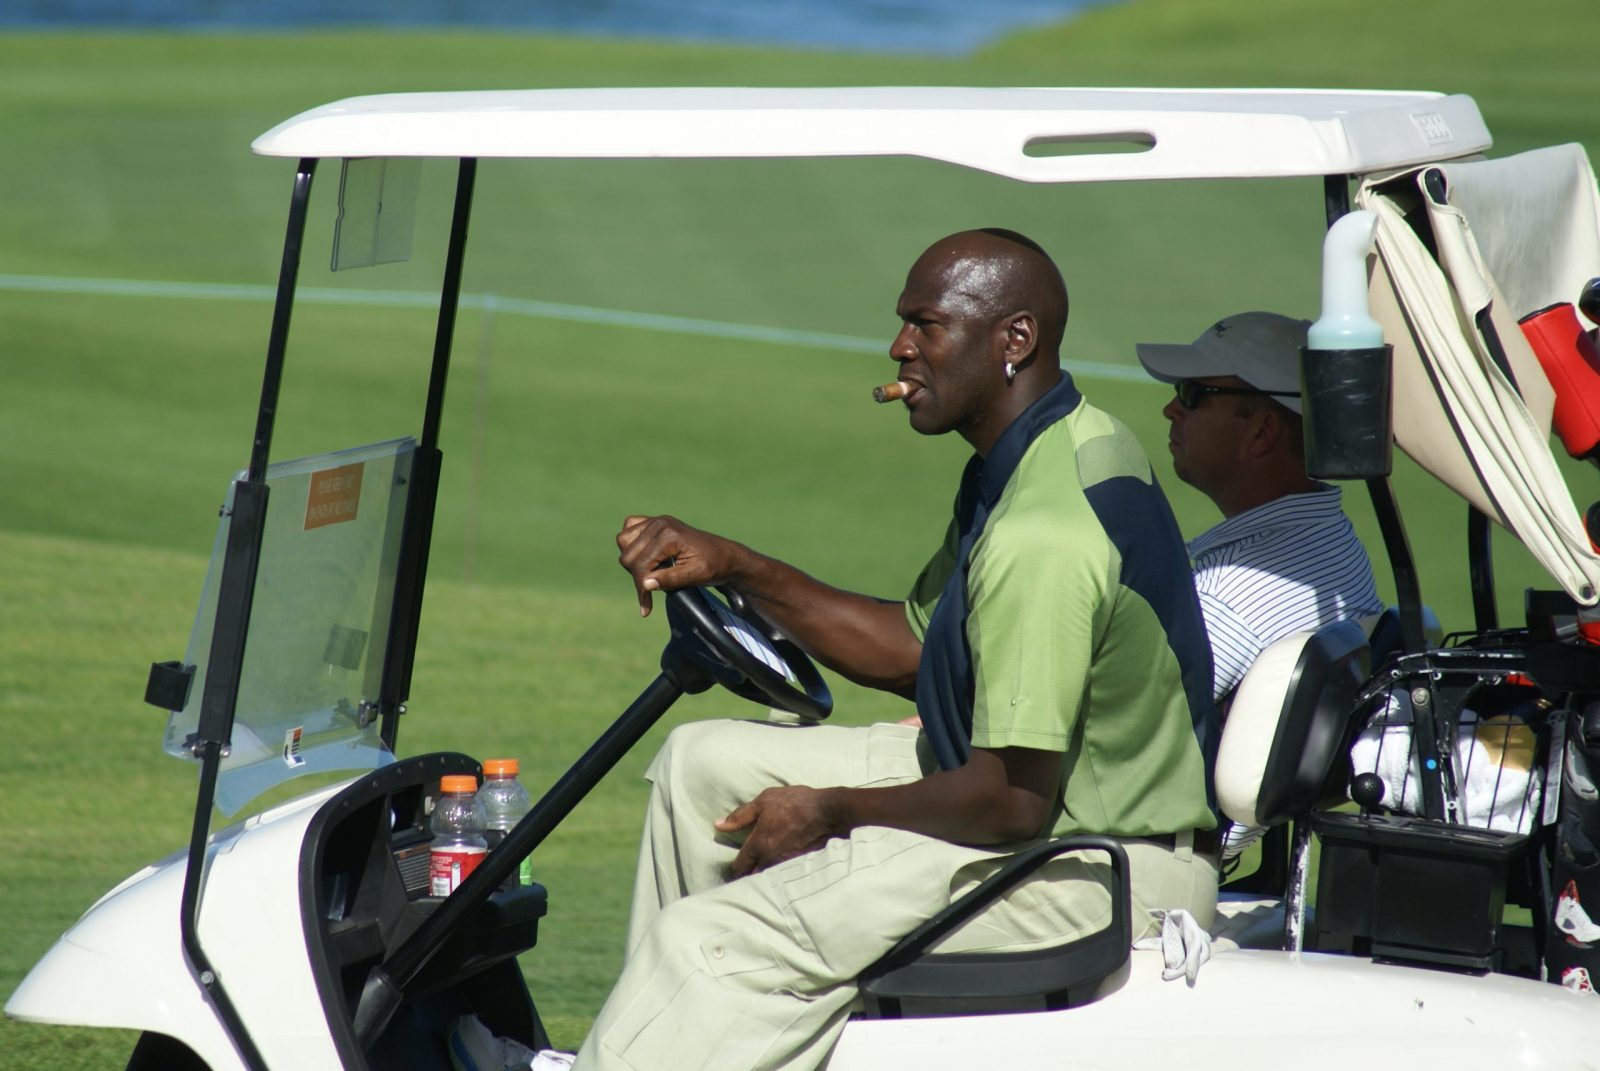 Michael Jordan smoking a cigar while driving a golf cart.